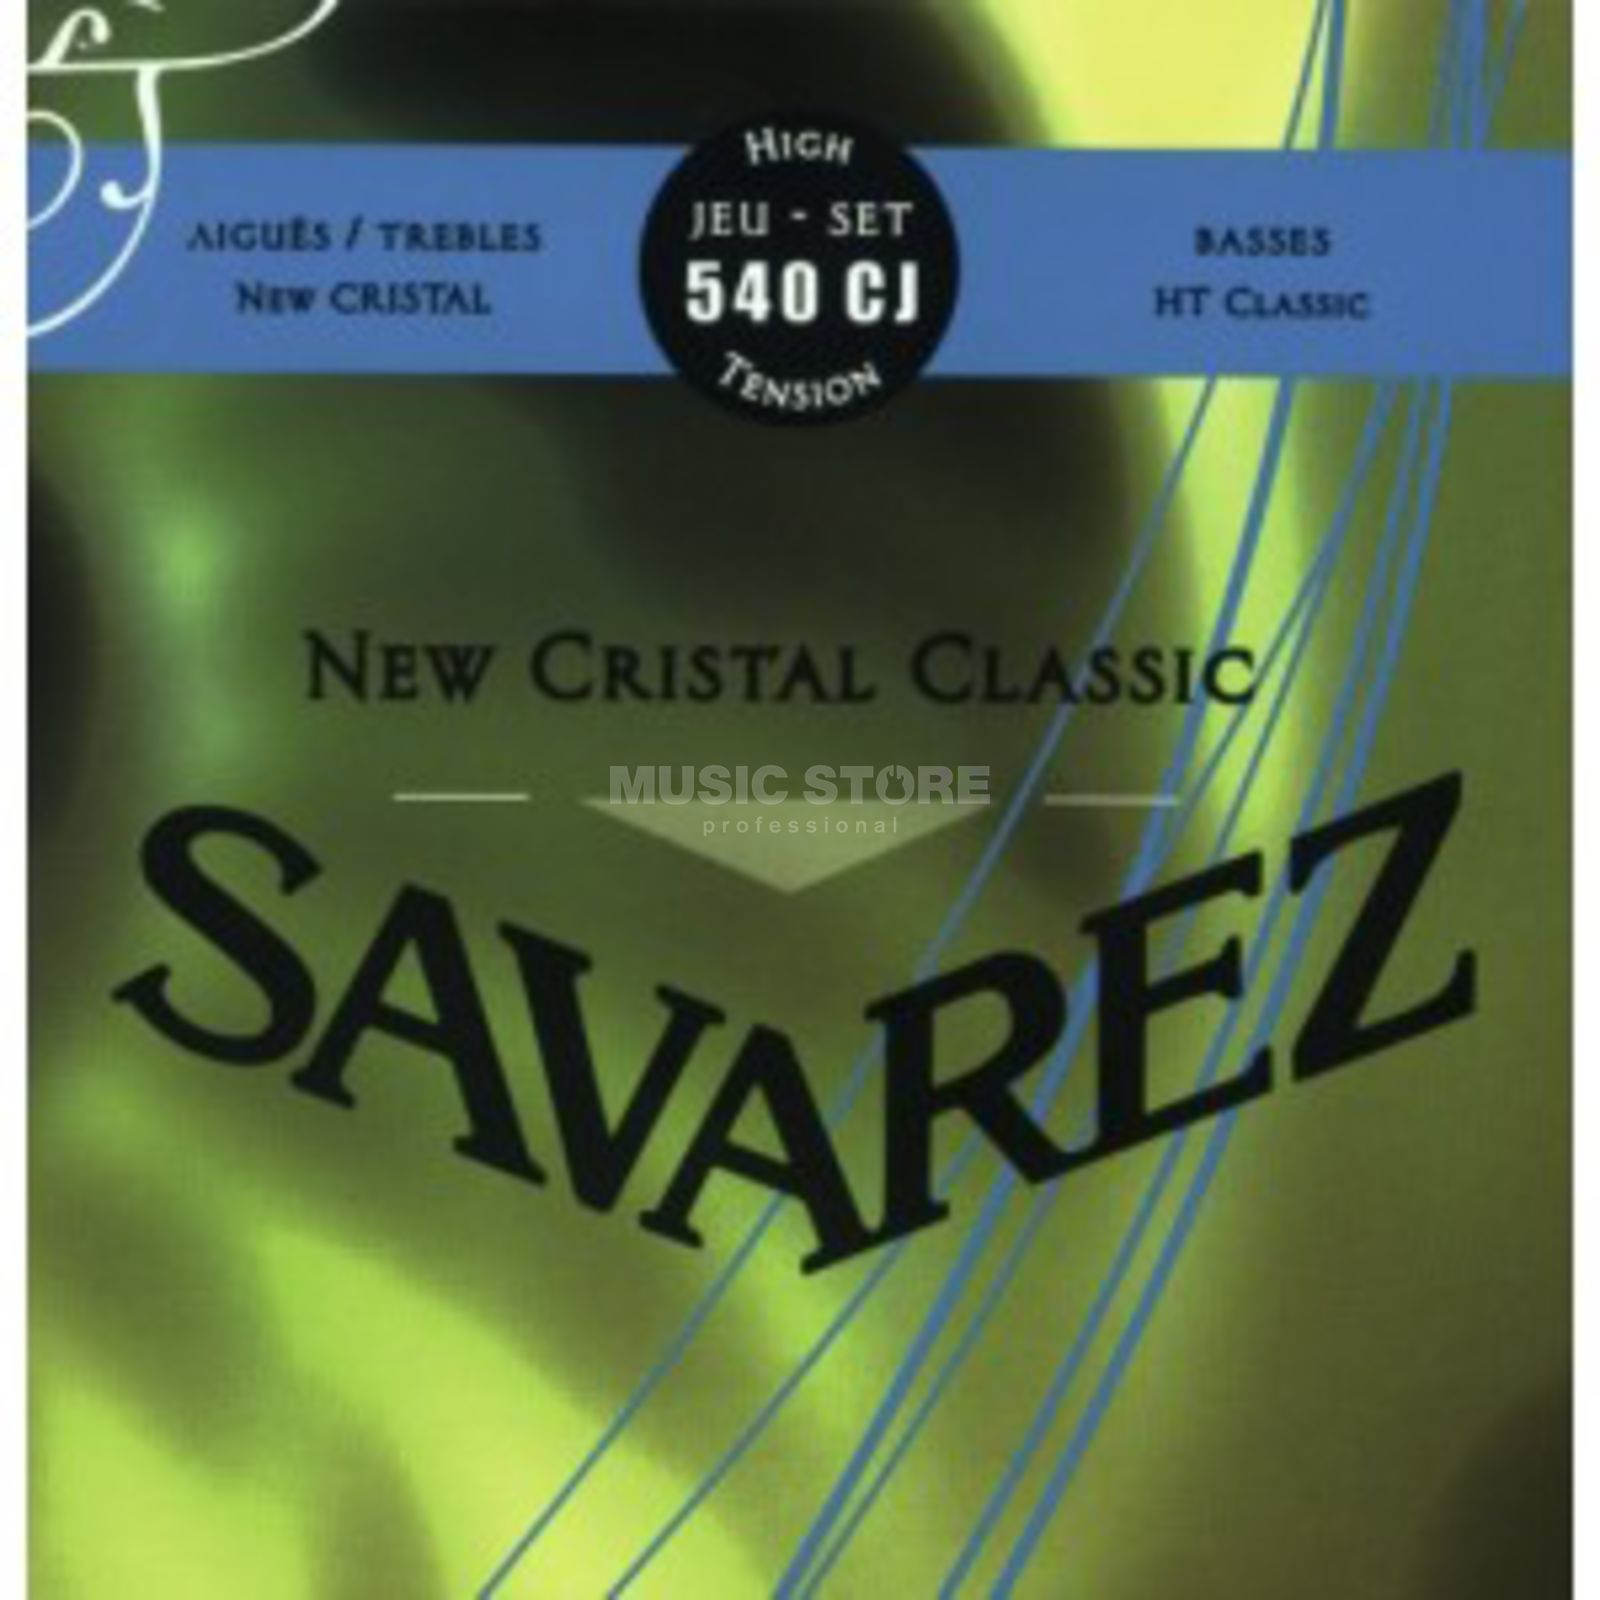 Savarez K-Git. Saiten 540CJ Corum New Cristal, High Tension Produktbillede